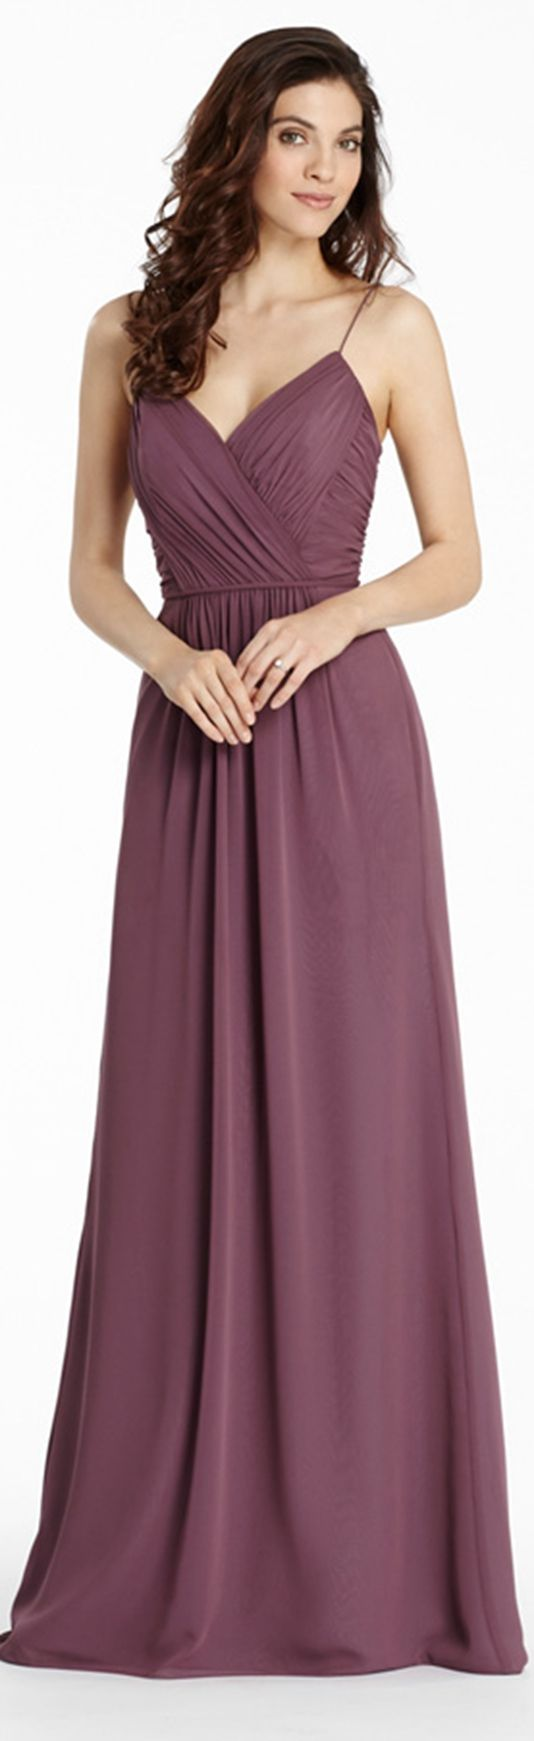 Spaghetti #Straps V Neck Pleated Bodice Long Chiffon #Bridesmaid Dress, £109.99